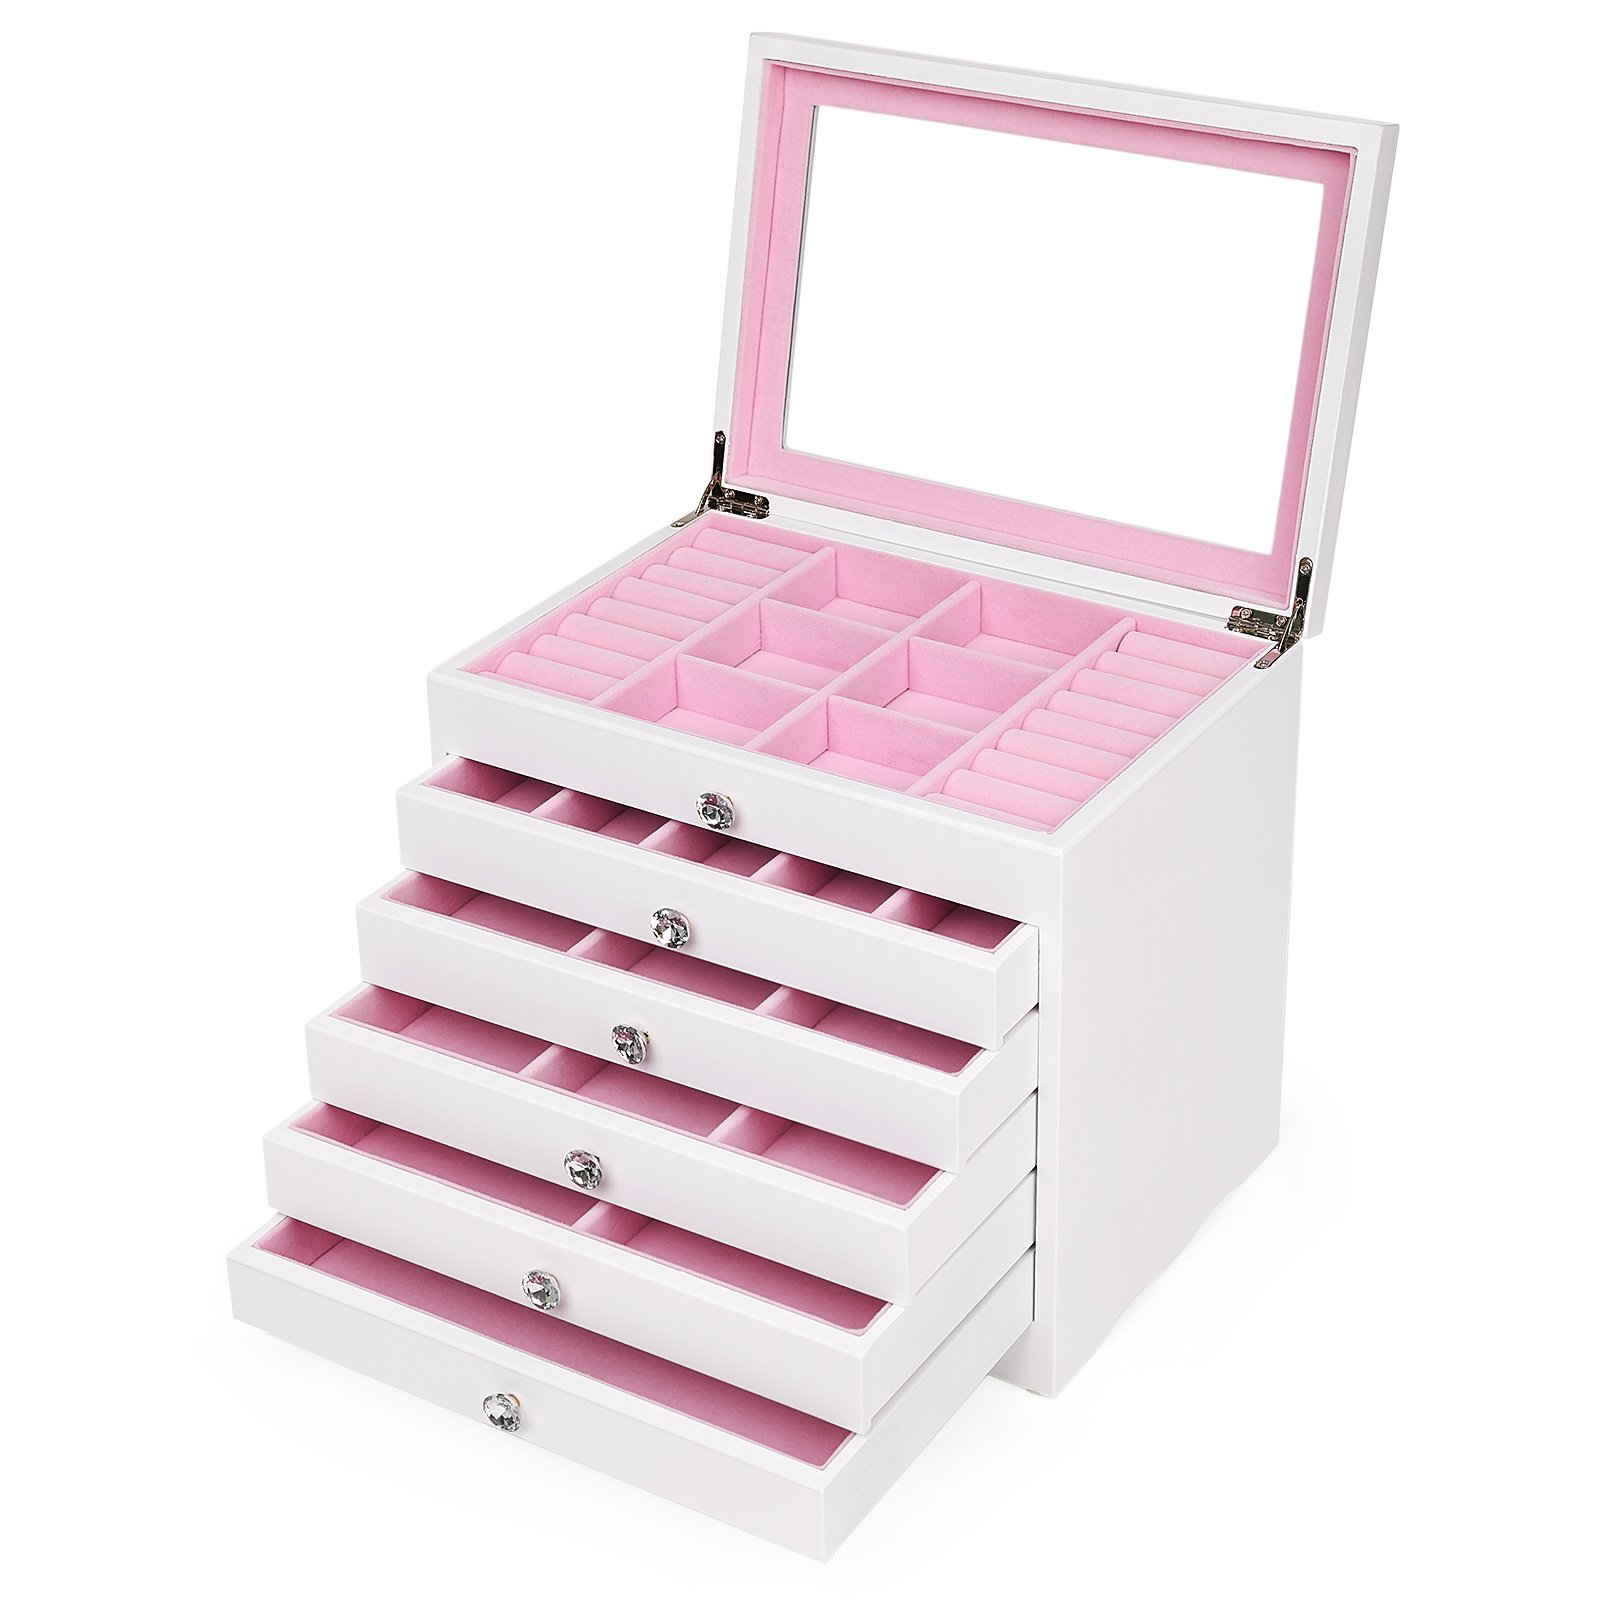 SONGMICS 6-Layer Jewelry Box Extra Large Girls Jewelry Organizer Display Storage Case, Gift for Mom, White and Pink UJOW06W